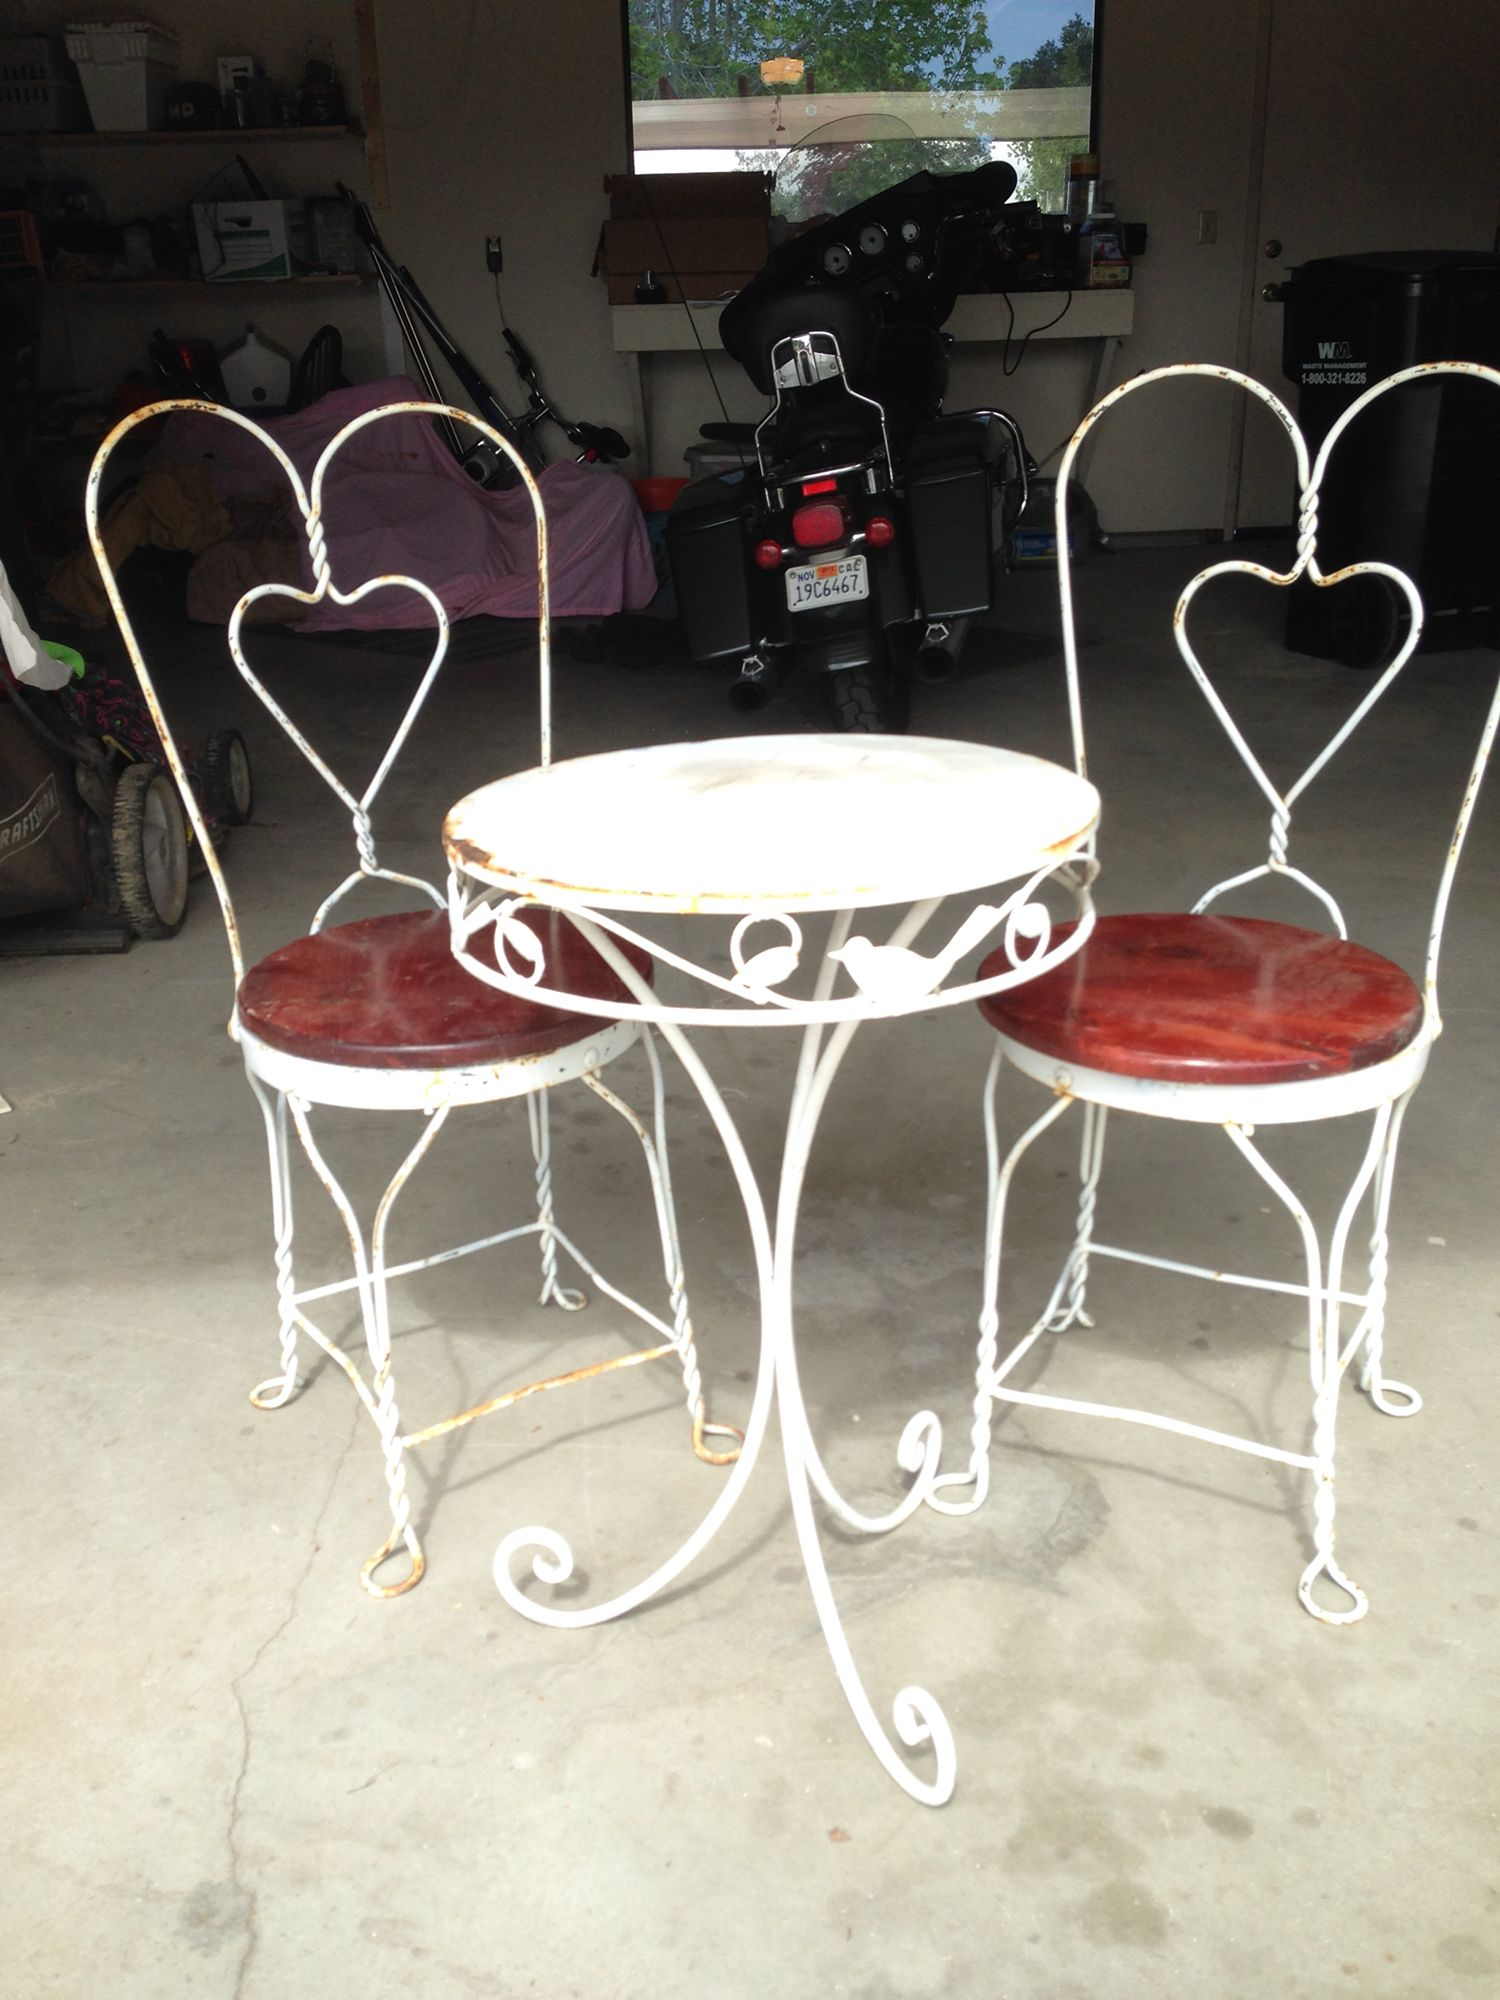 ice cream table and chairs small leather for living room before diy furniture makeover patio vintage